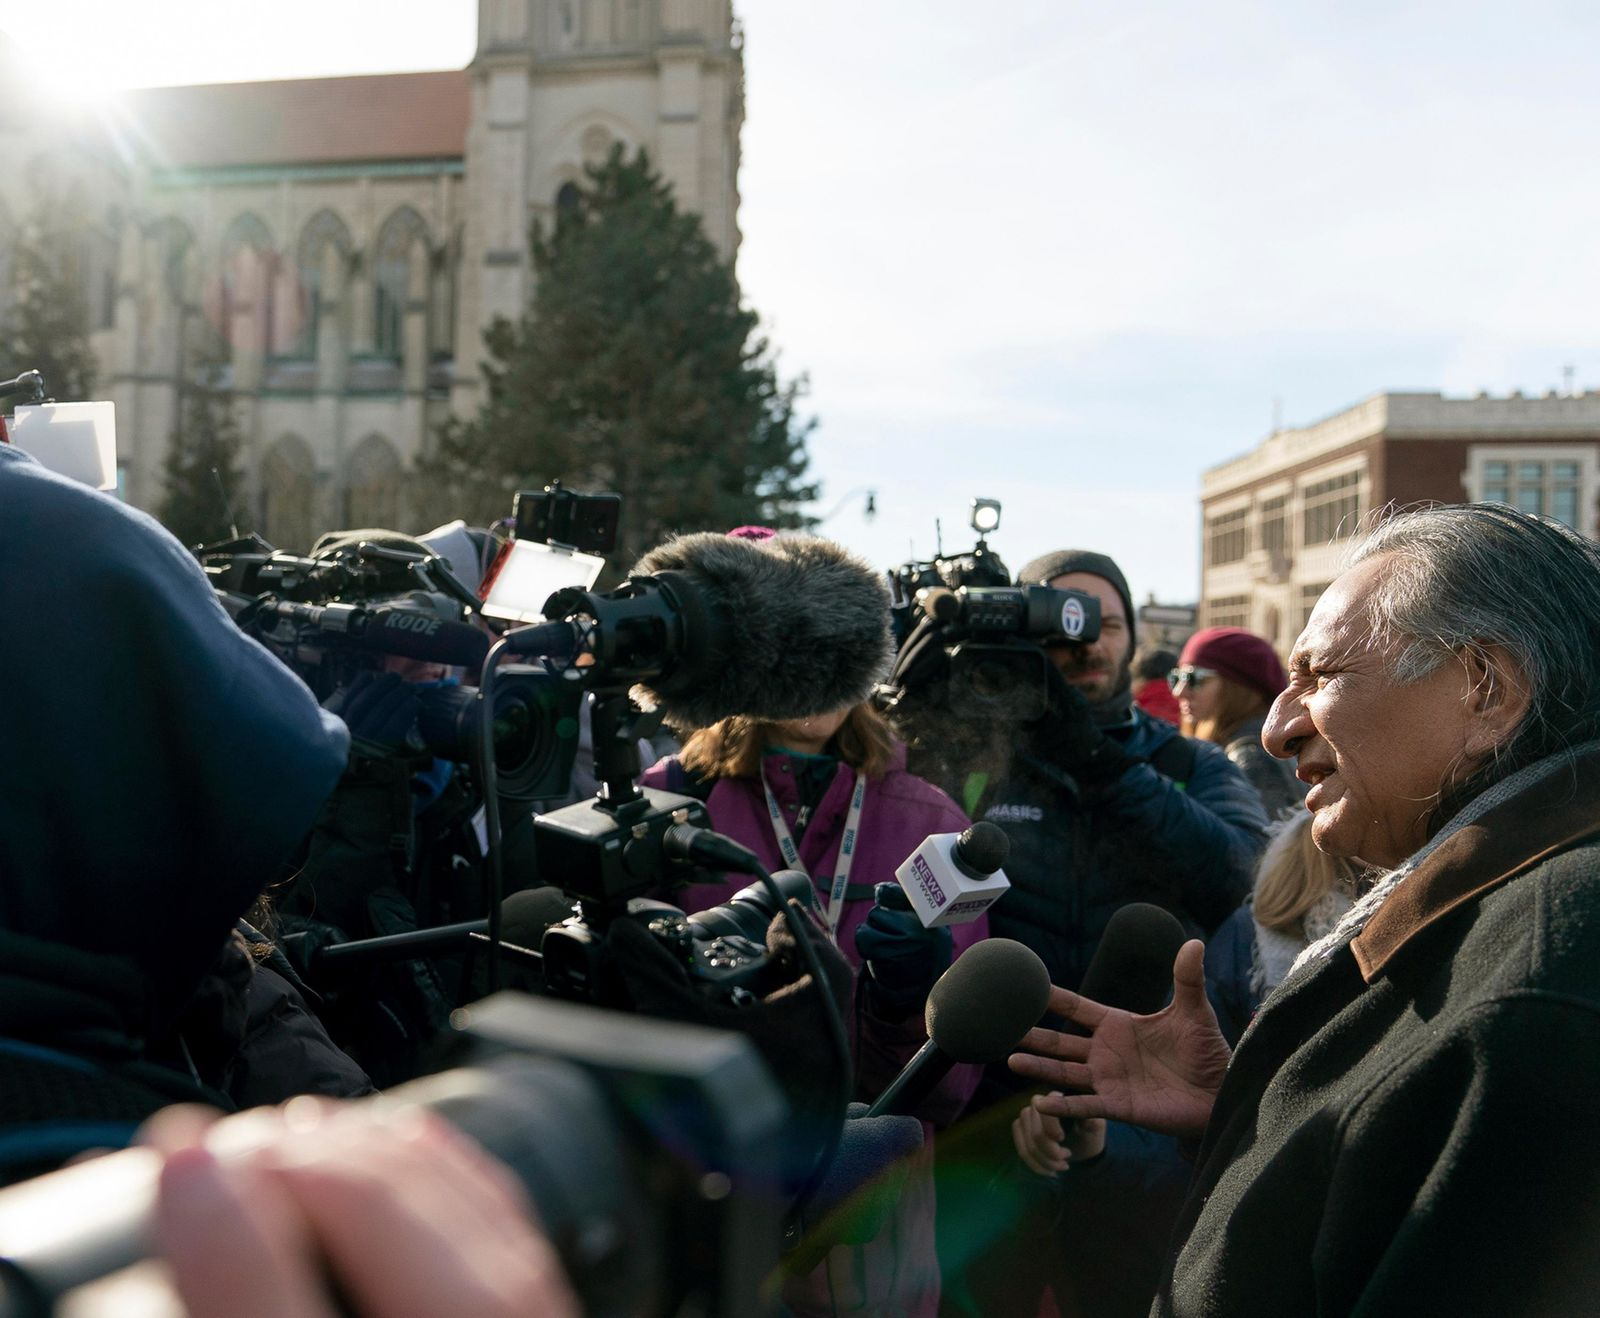 Guy Jones speaks to the press during a gathering in front of the Catholic Diocese in Covington, Ky., Tuesday, Jan. 22, 2019. Jones organized Tuesday's gathering of Native American supporters. (AP Photo/Bryan Woolston)